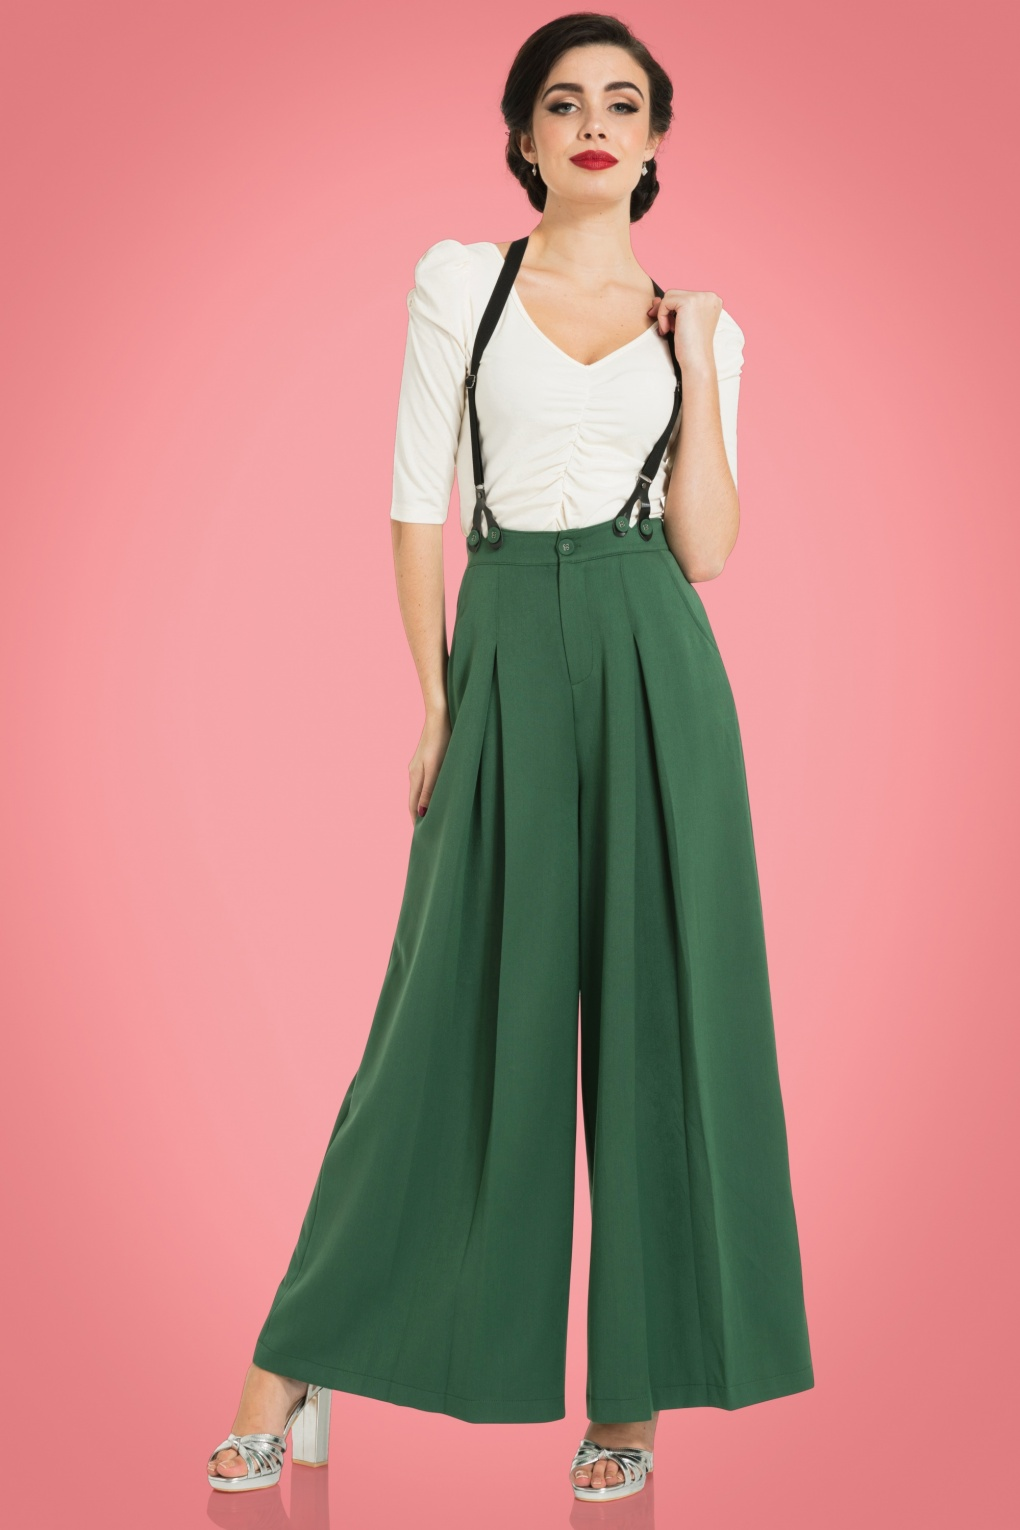 Vintage High Waisted Trousers, Sailor Pants, Jeans 40s Laura Trousers in Forest Green £41.39 AT vintagedancer.com